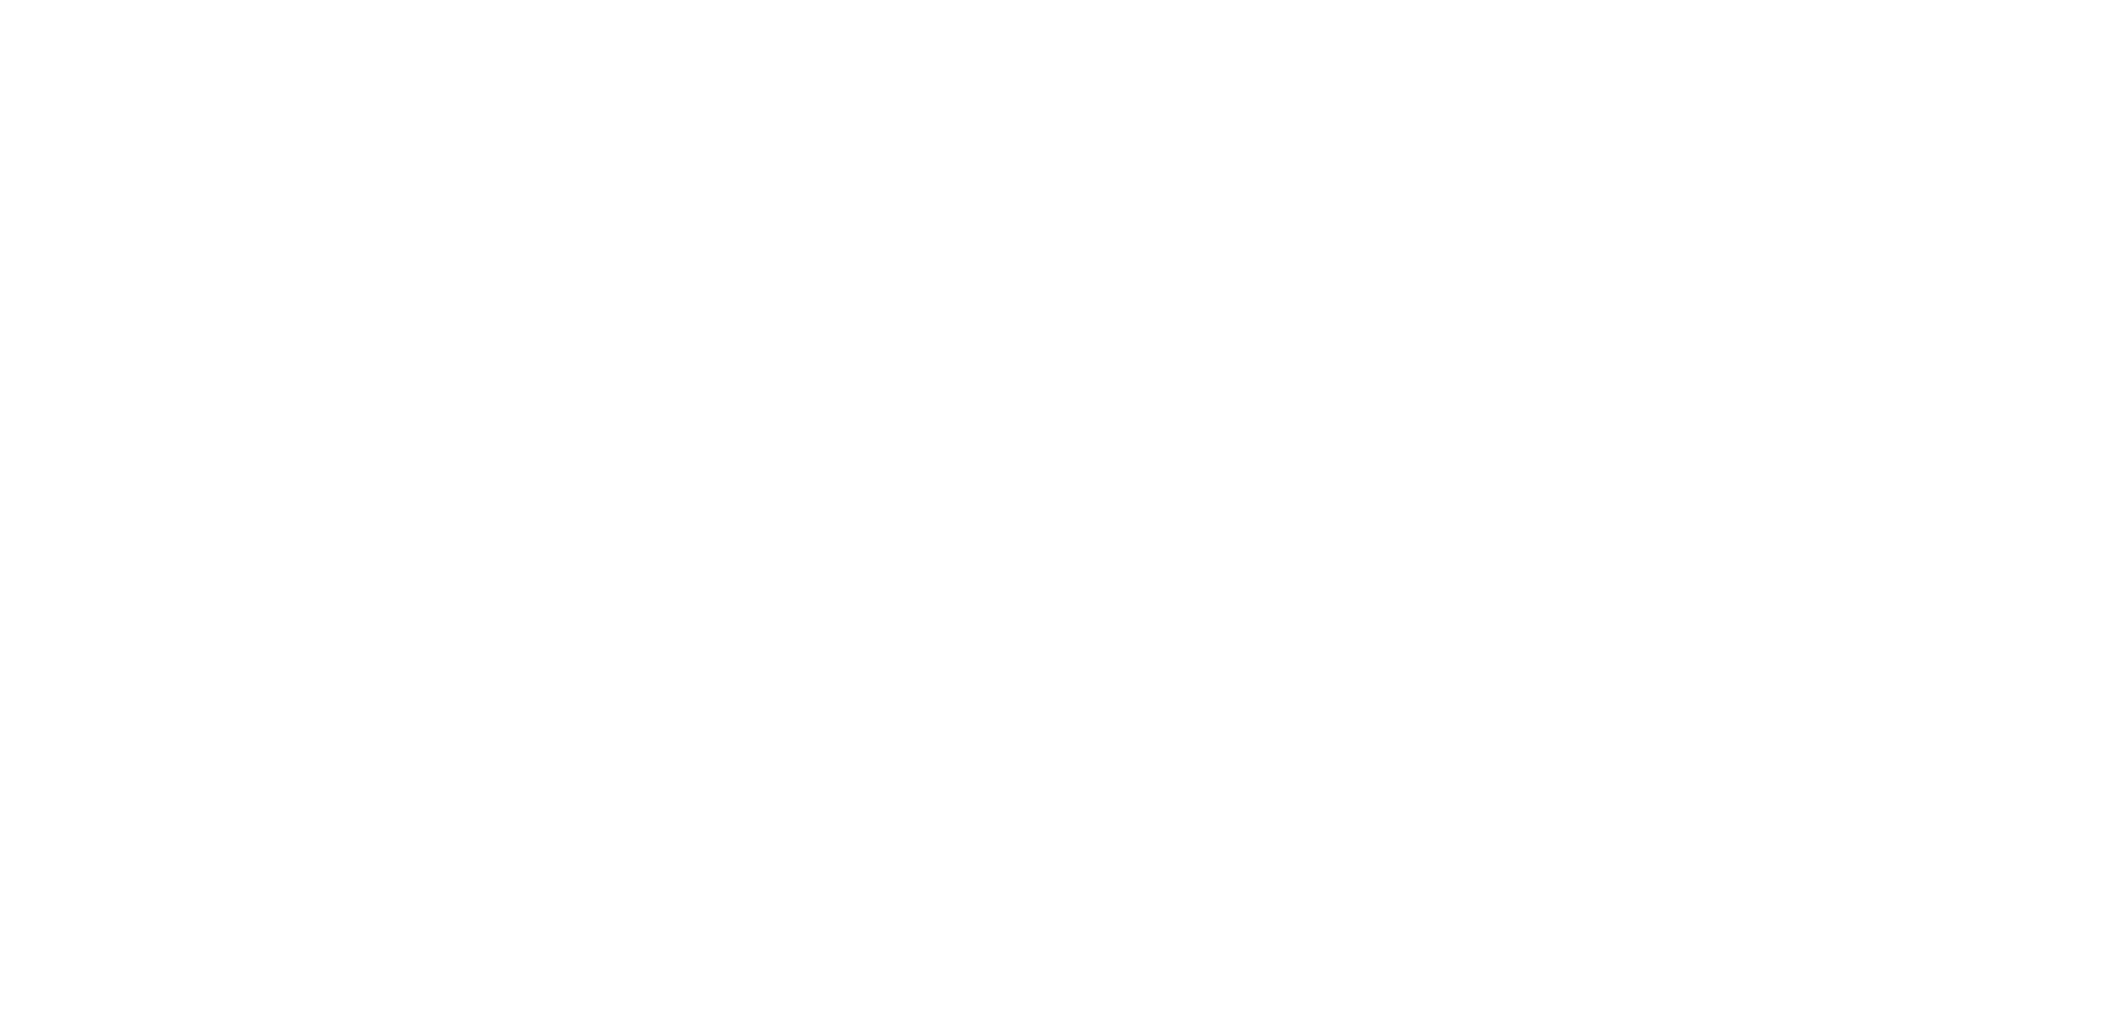 Surfrider Northern Michigan